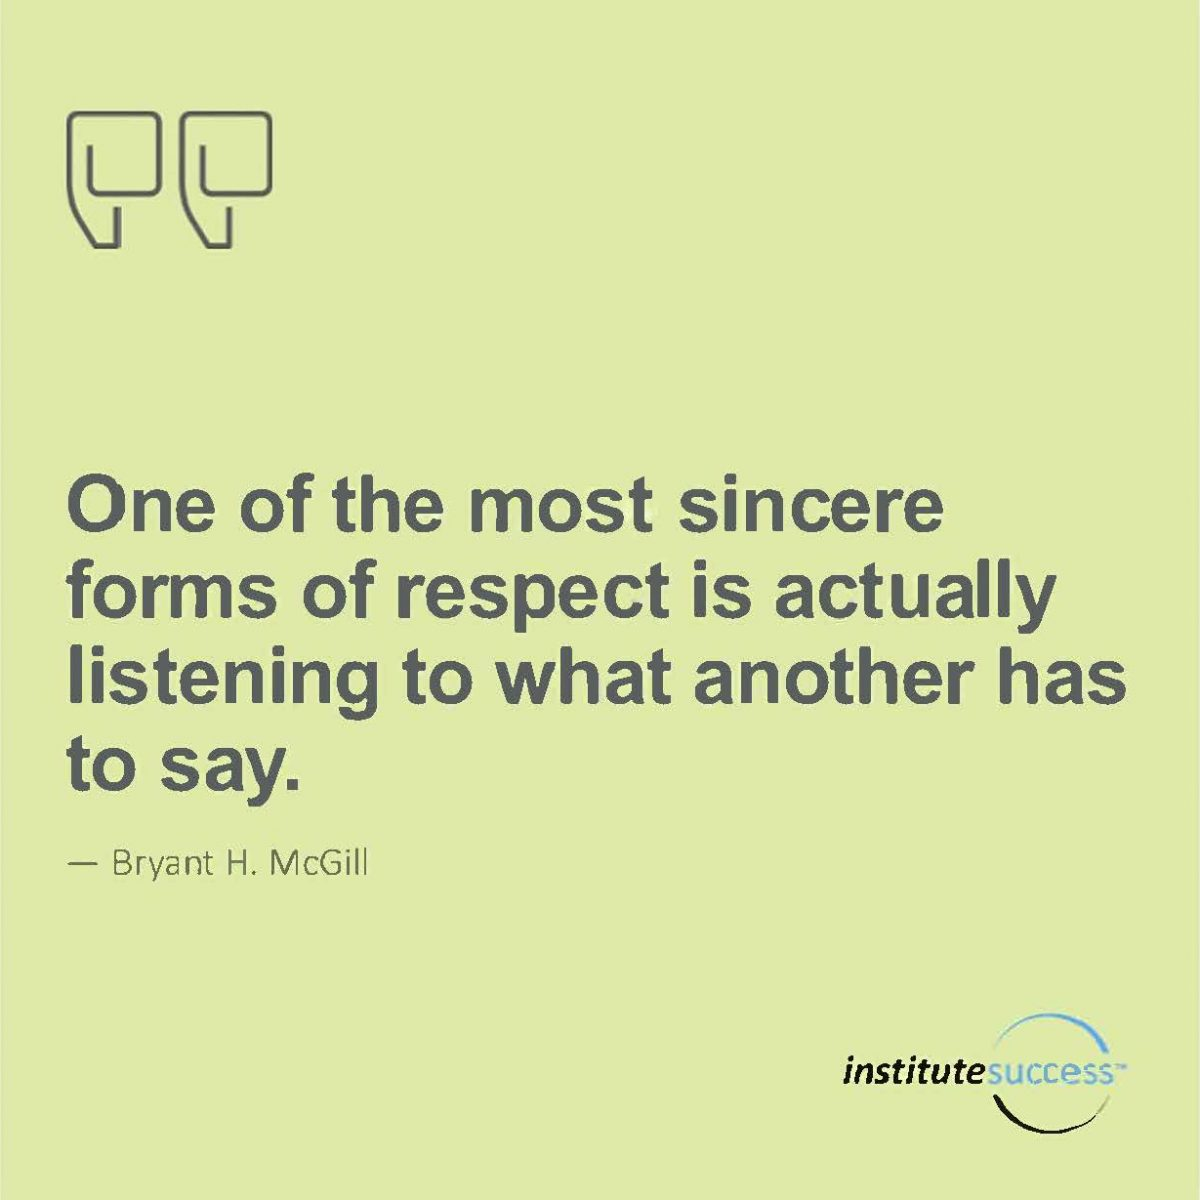 One of the most sincere forms of respect is actually listening to what another has to say.  Bryant H. McGill